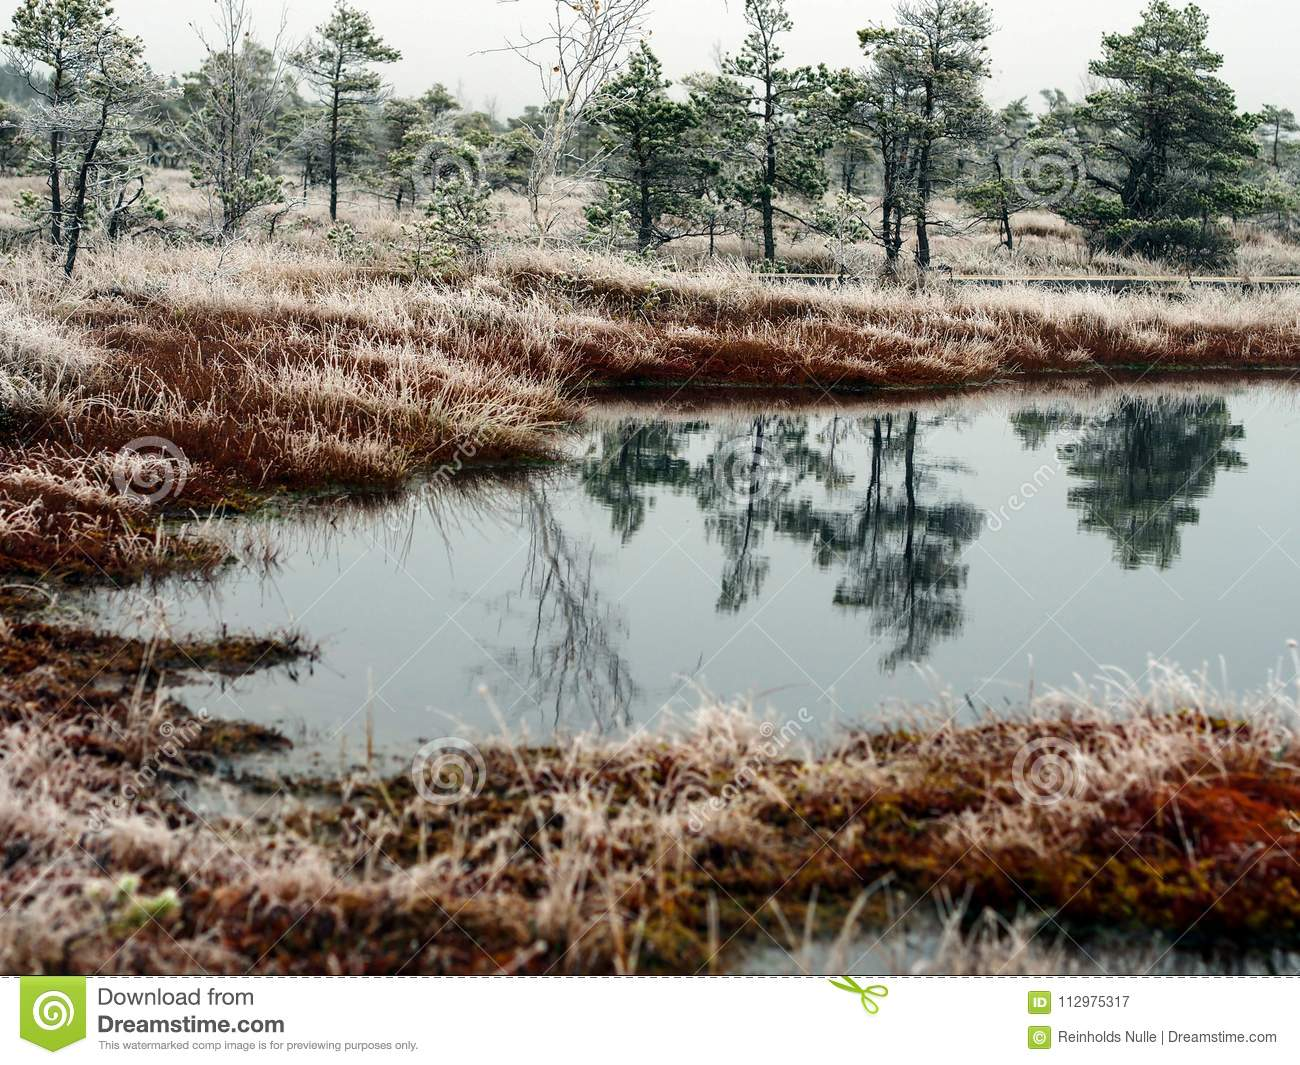 Pine Trees in Field of Kemeri moor in Latvia with a Pond in a Foreground